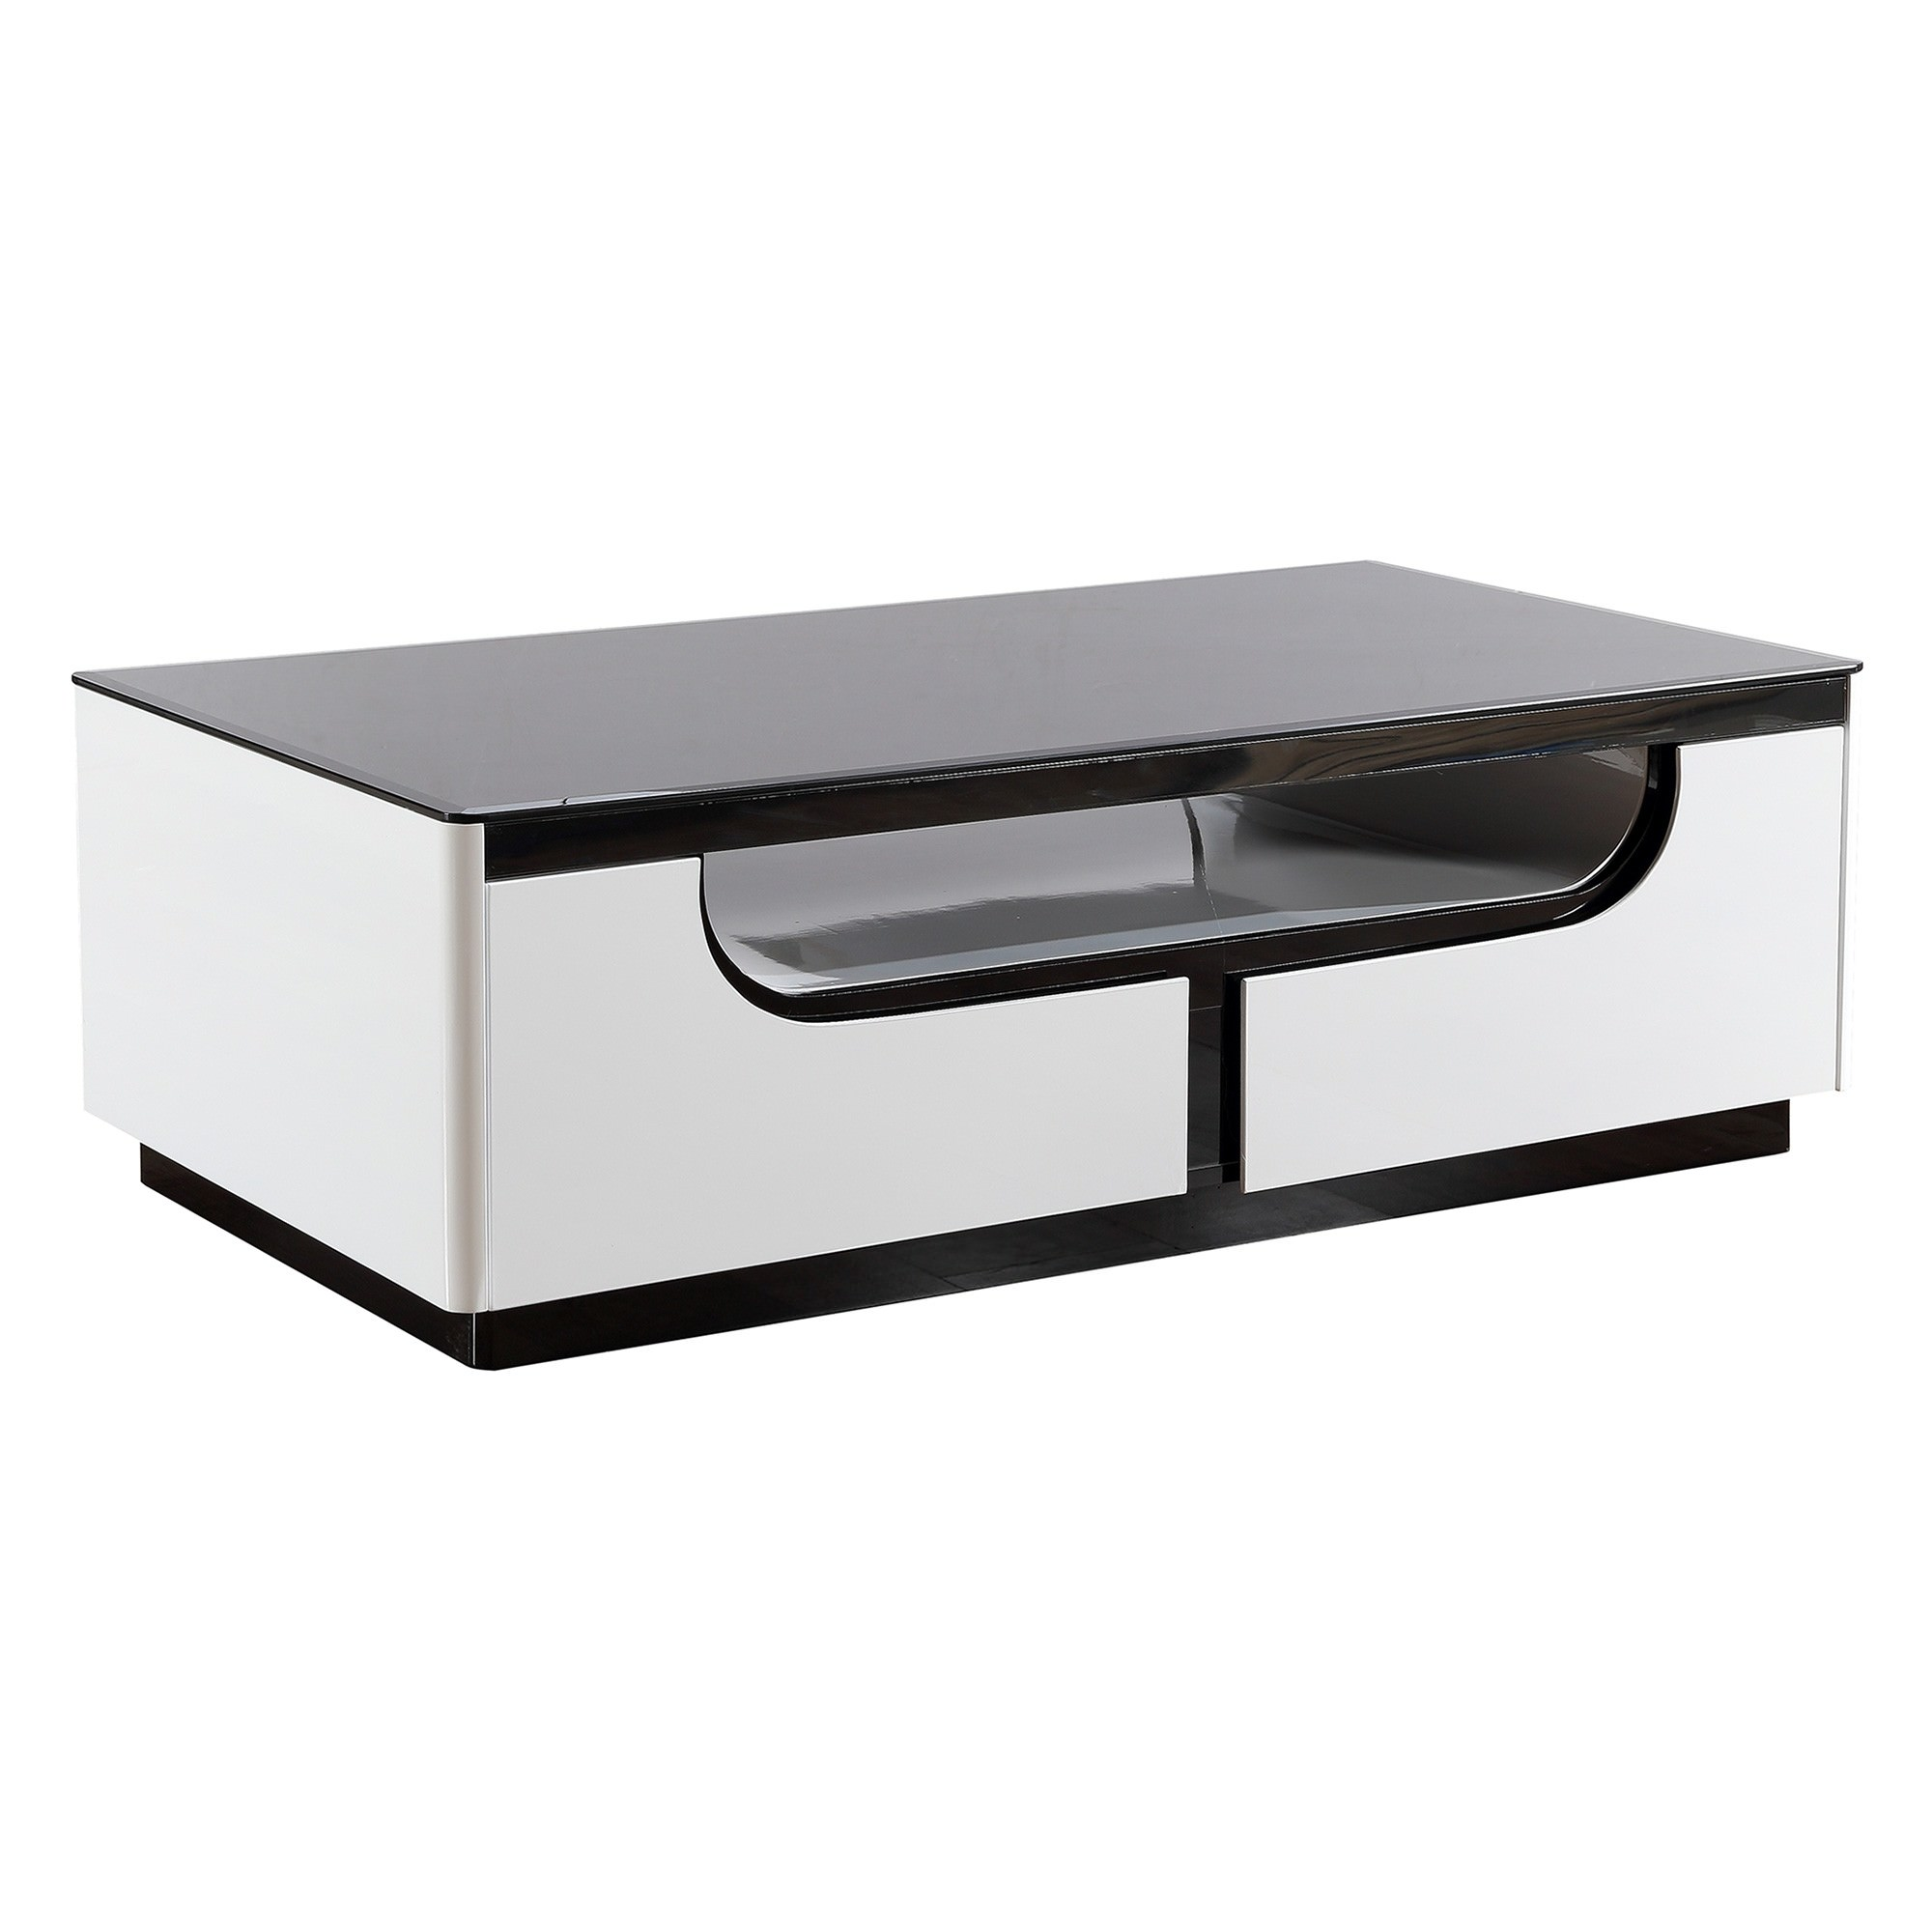 Roche Glass Topped Coffee Table, 120cm, Glossy White